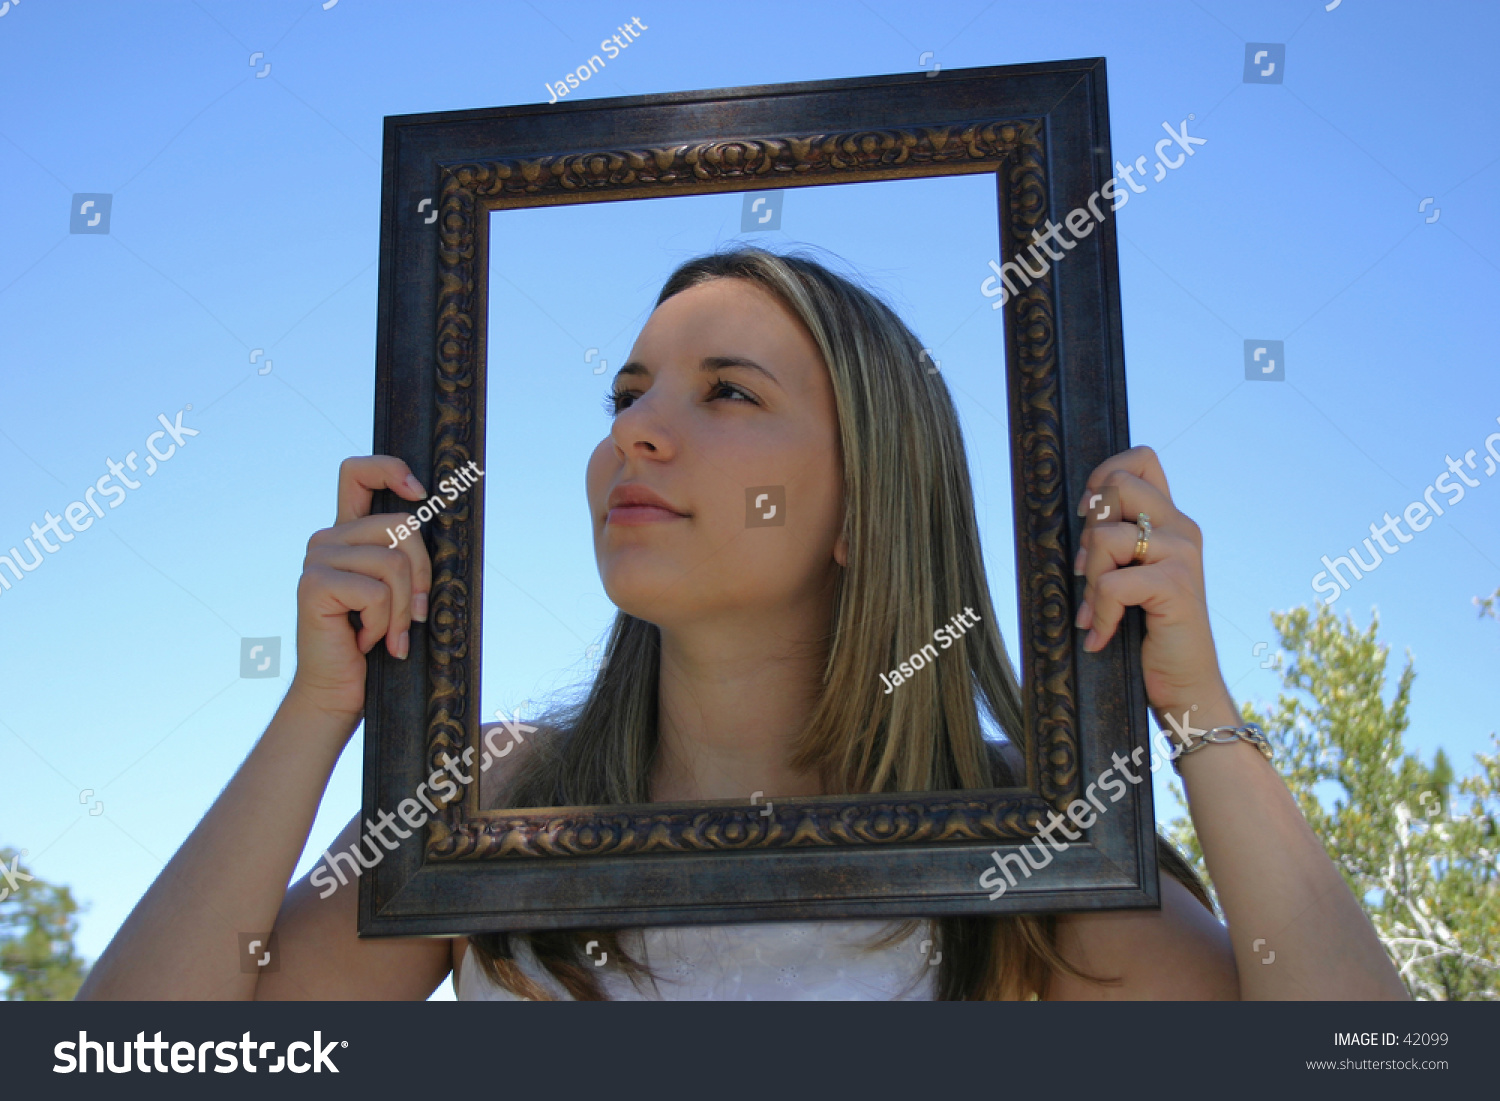 A young woman with her head in a frame